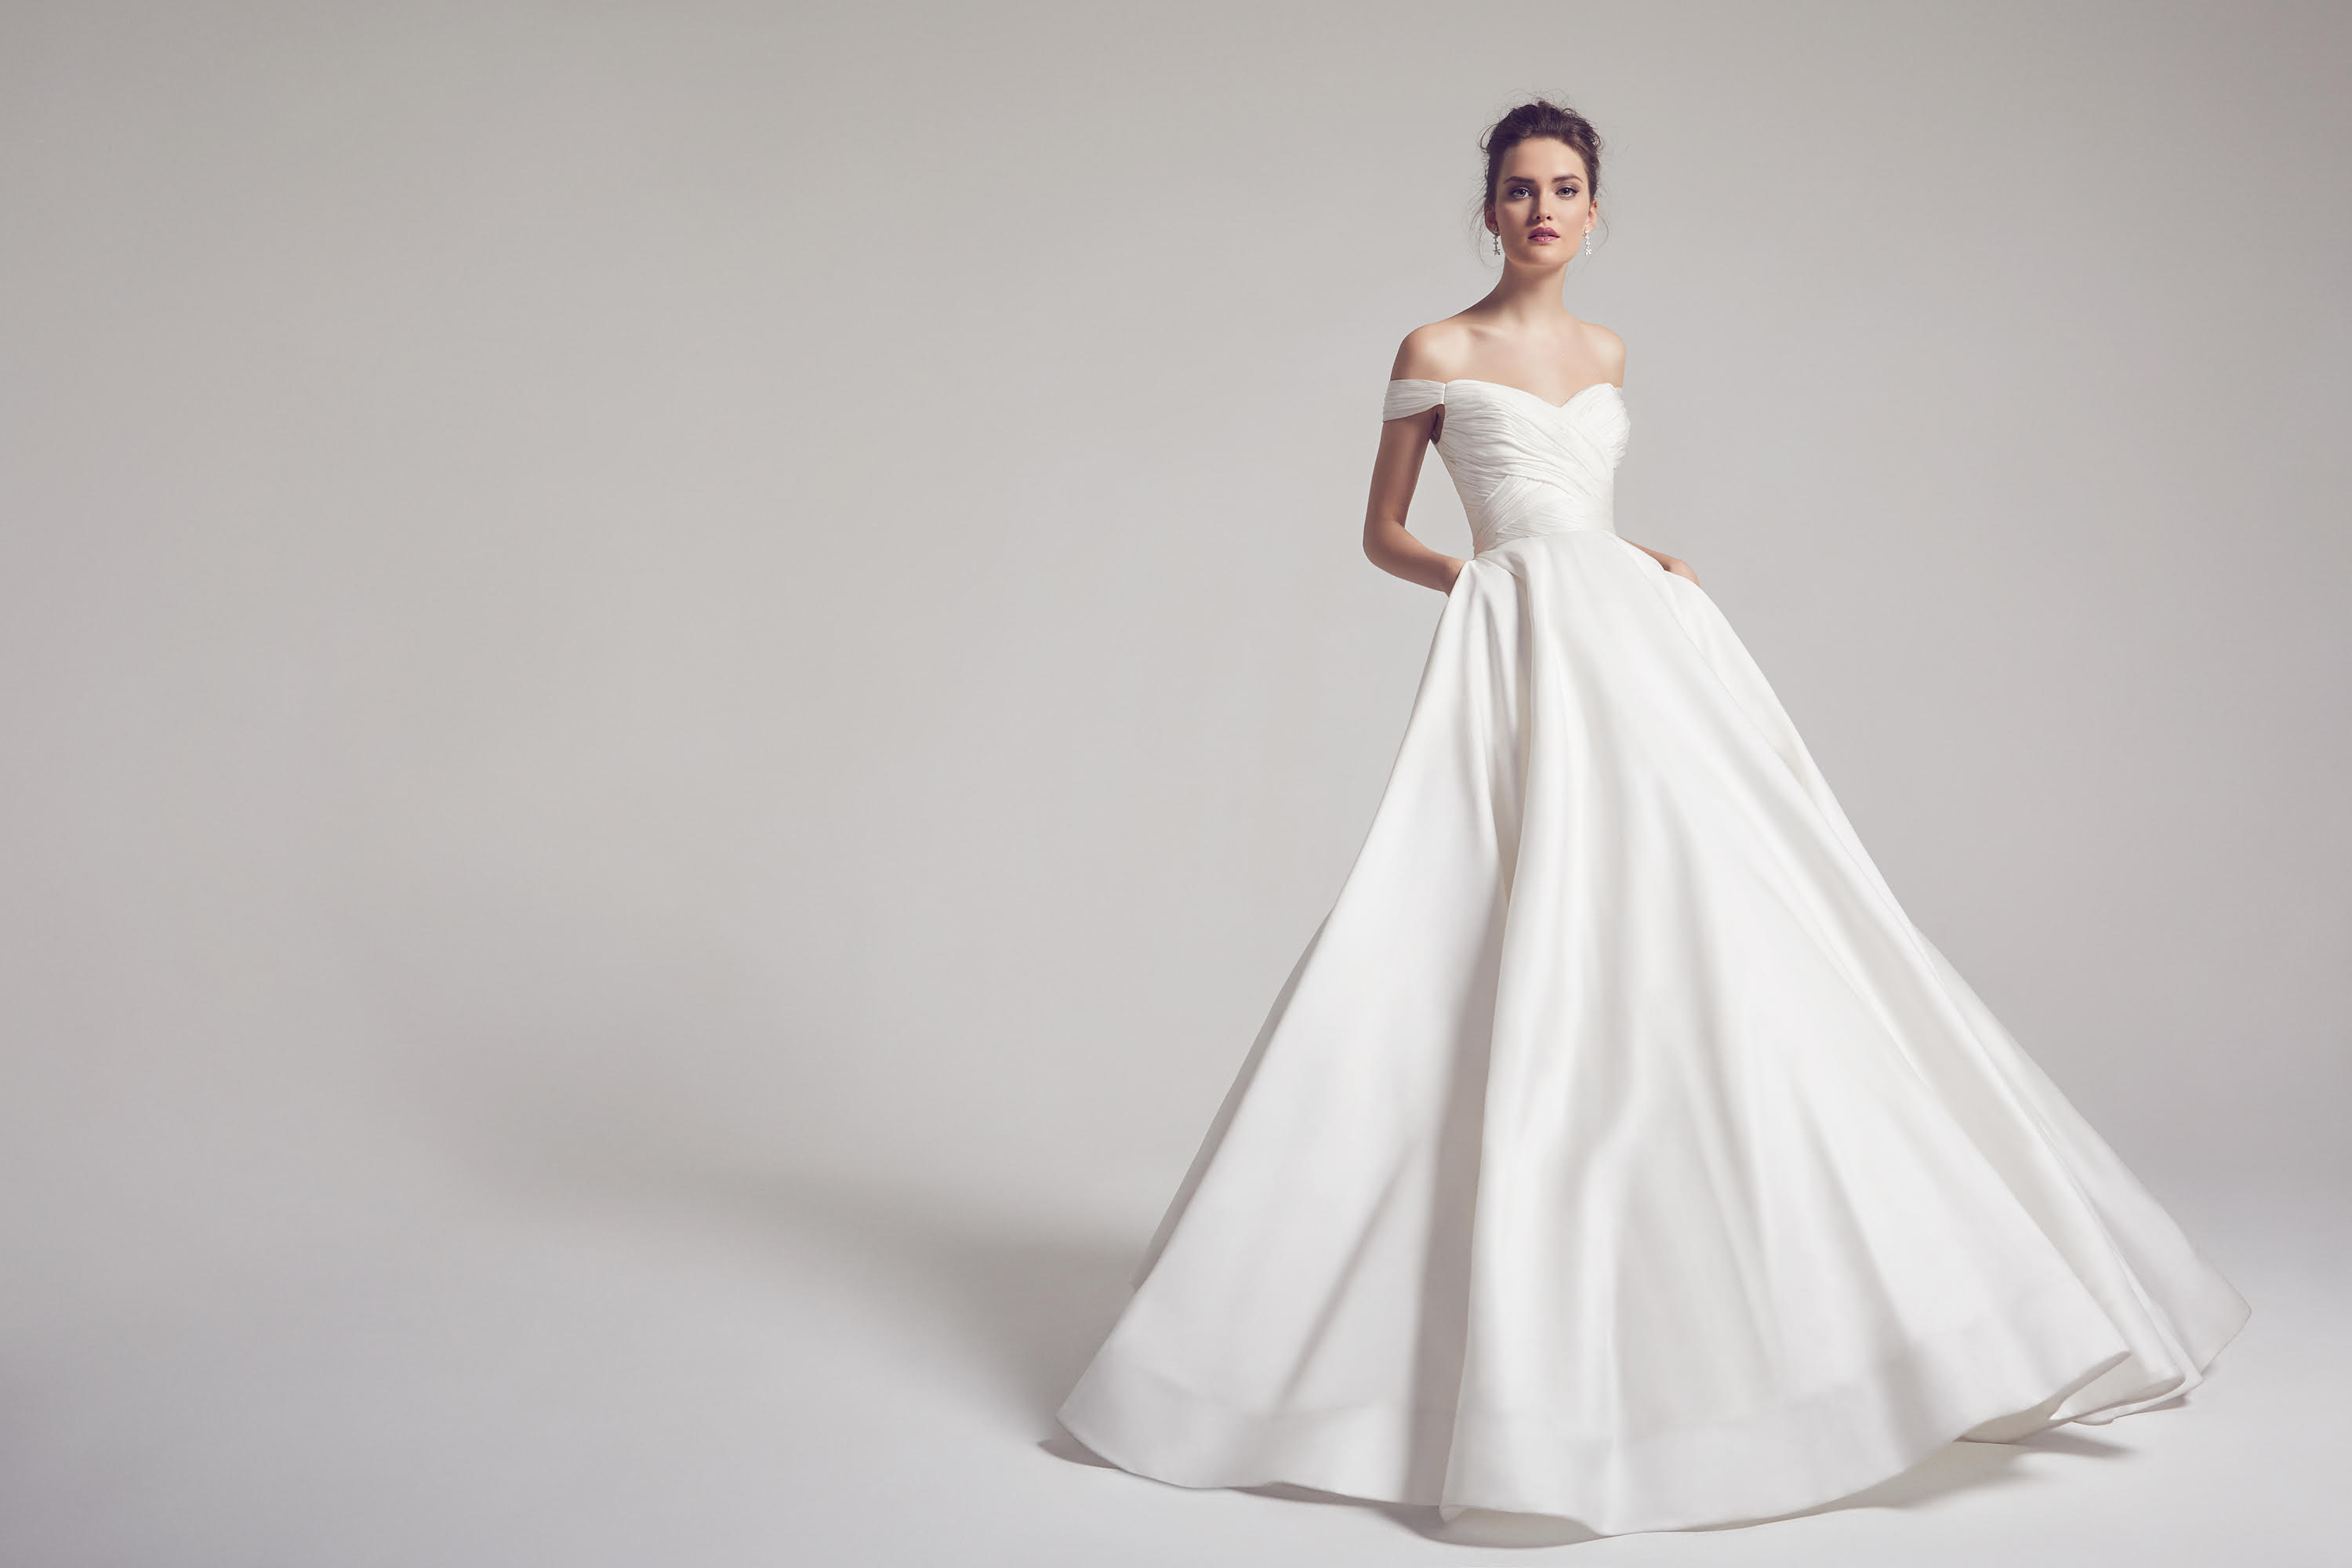 anne barge berkeley wedding dress gown, kalika silk, chiffon bodice, off-the-shoulder neckline